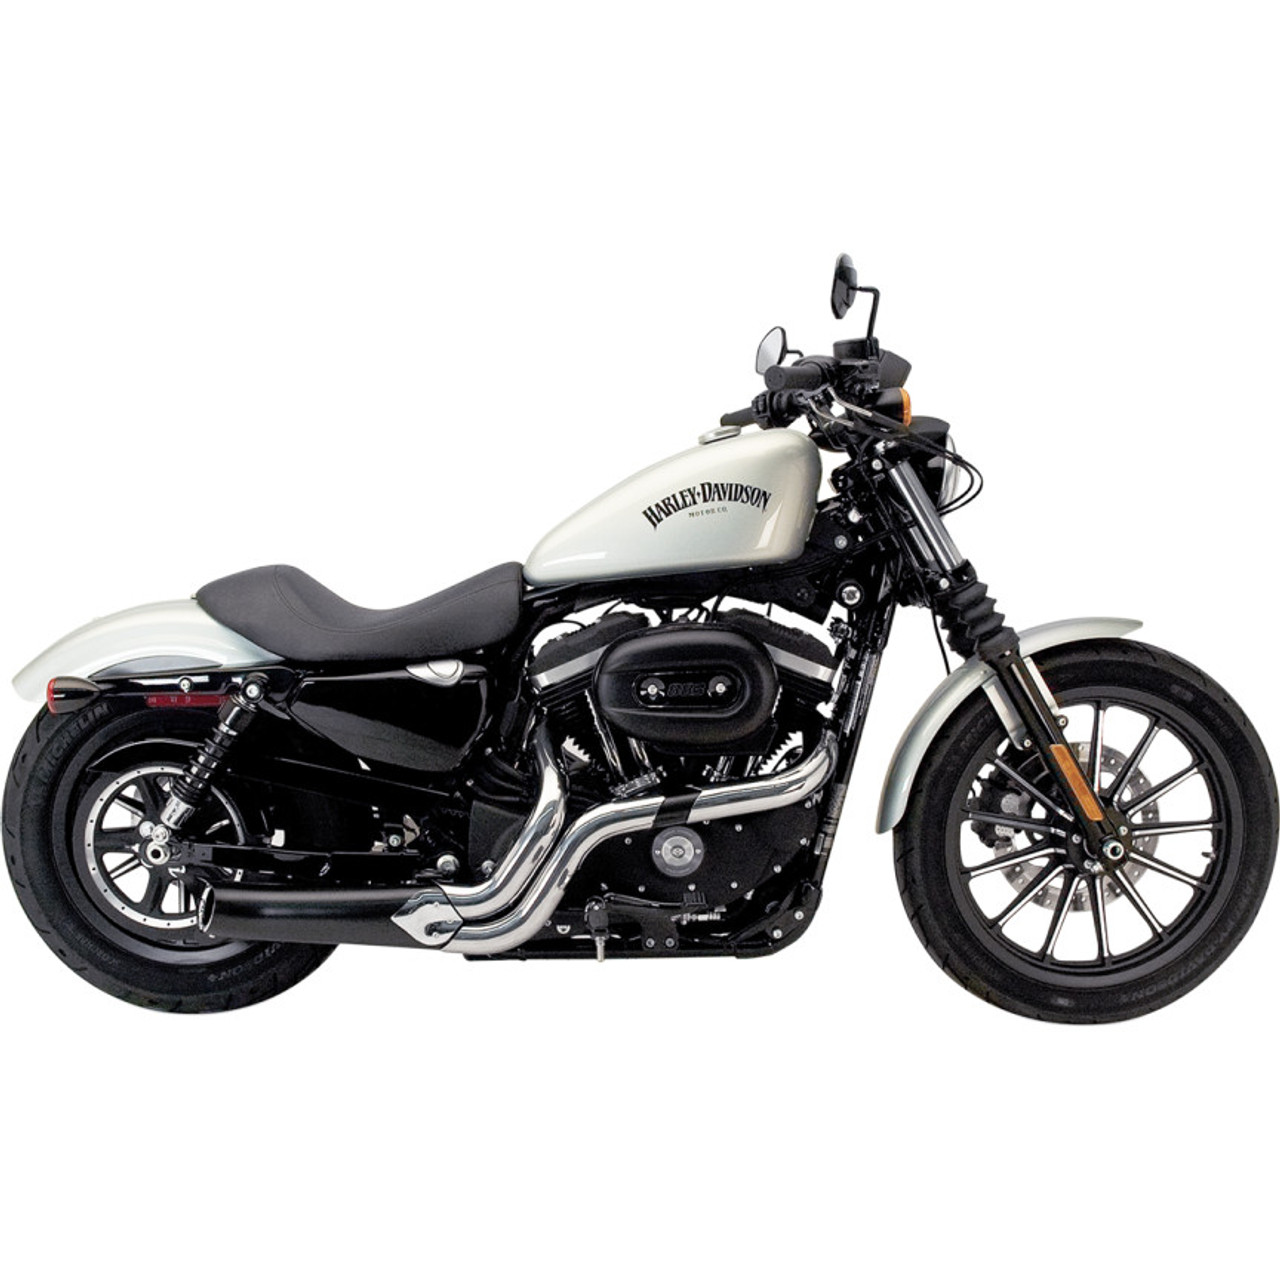 Supertrapp Phantom Ii Exhaust System For 2014 2015 Harley Sportster Get Lowered Cycles